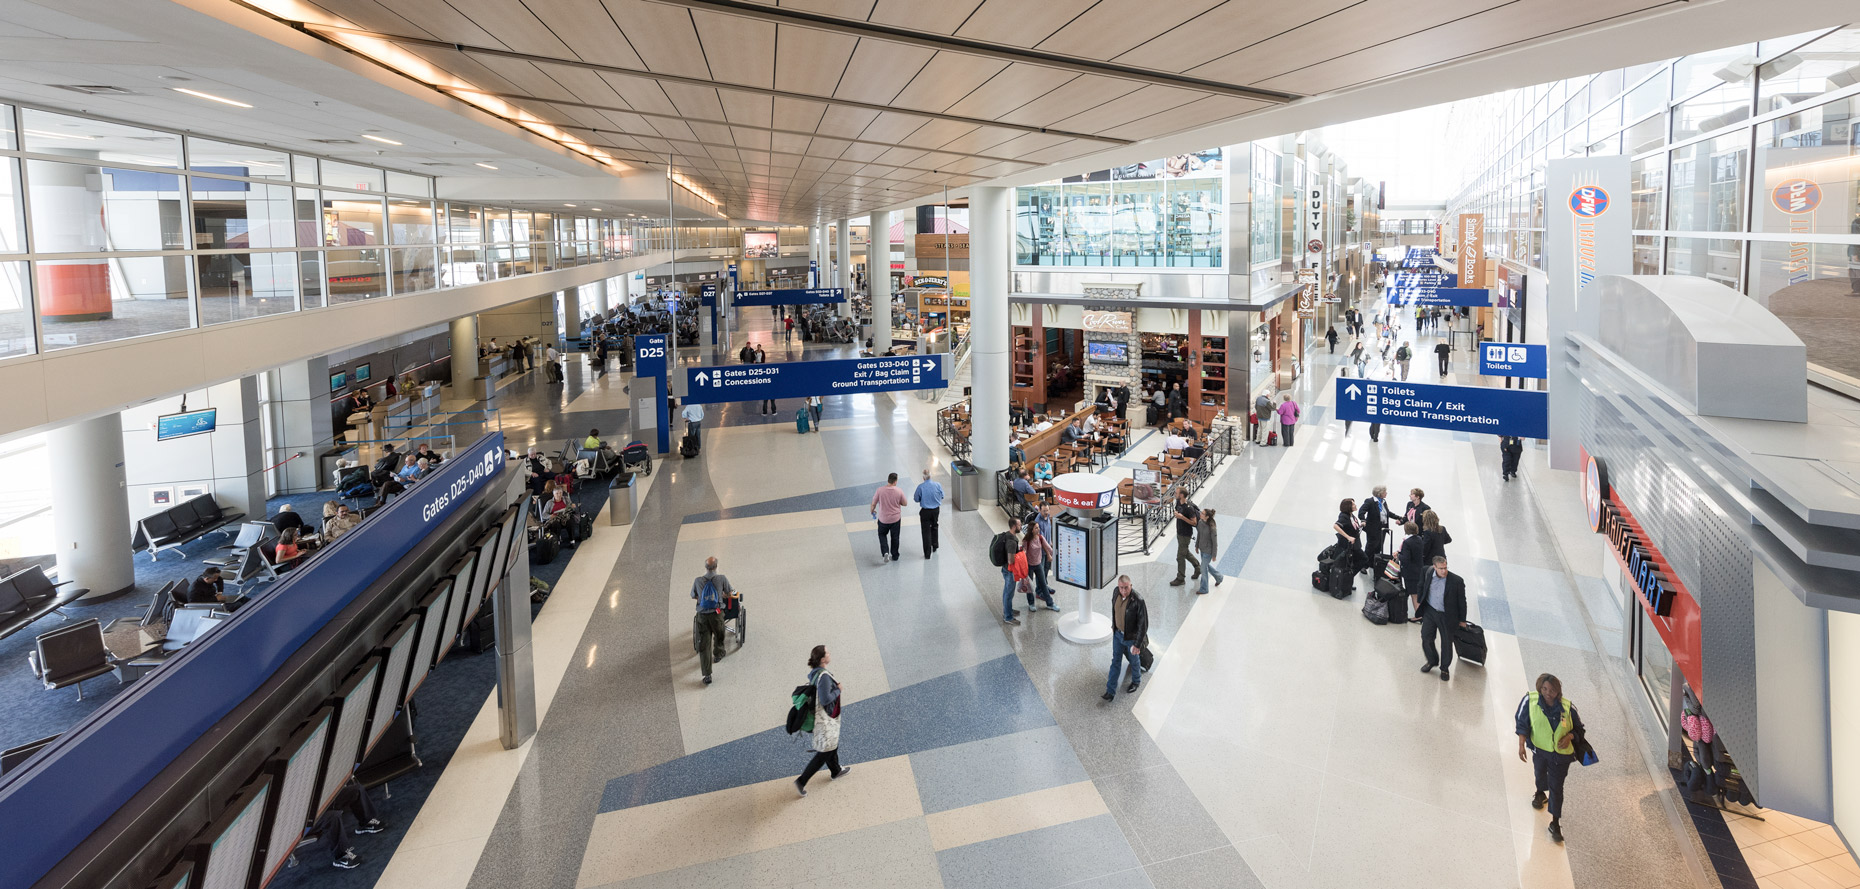 Terminal D at DFW Airport by commercial photographer in Dallas Kevin Brown